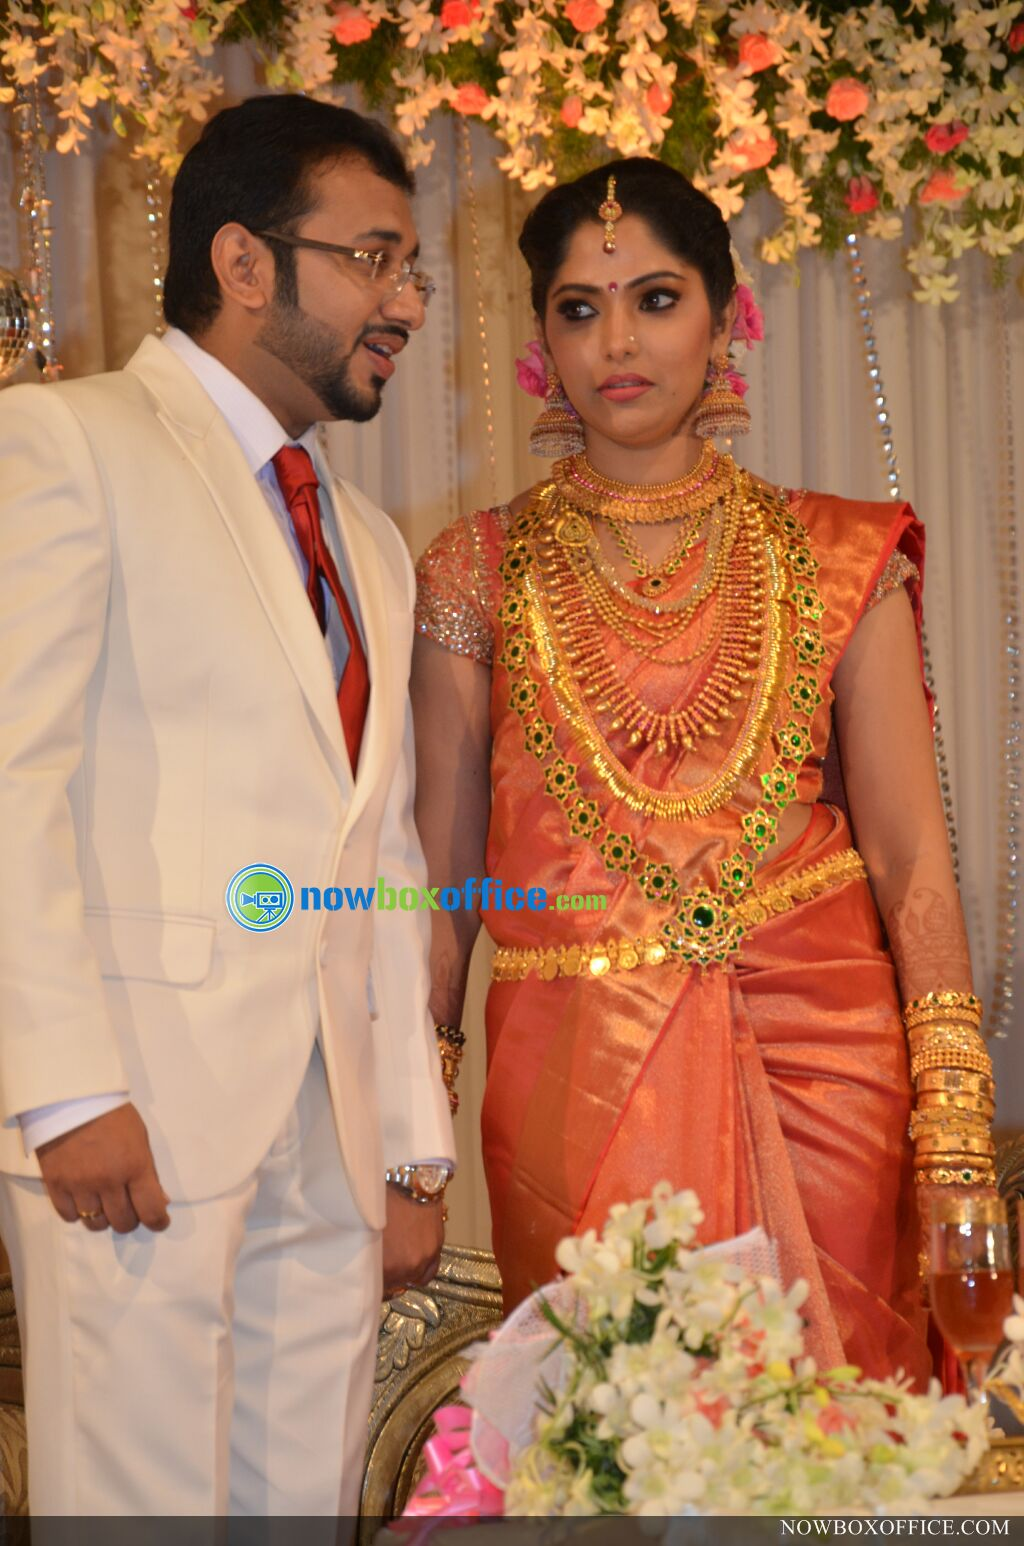 Muktha Wedding Reception Photos Muktha And Rinku Tomy